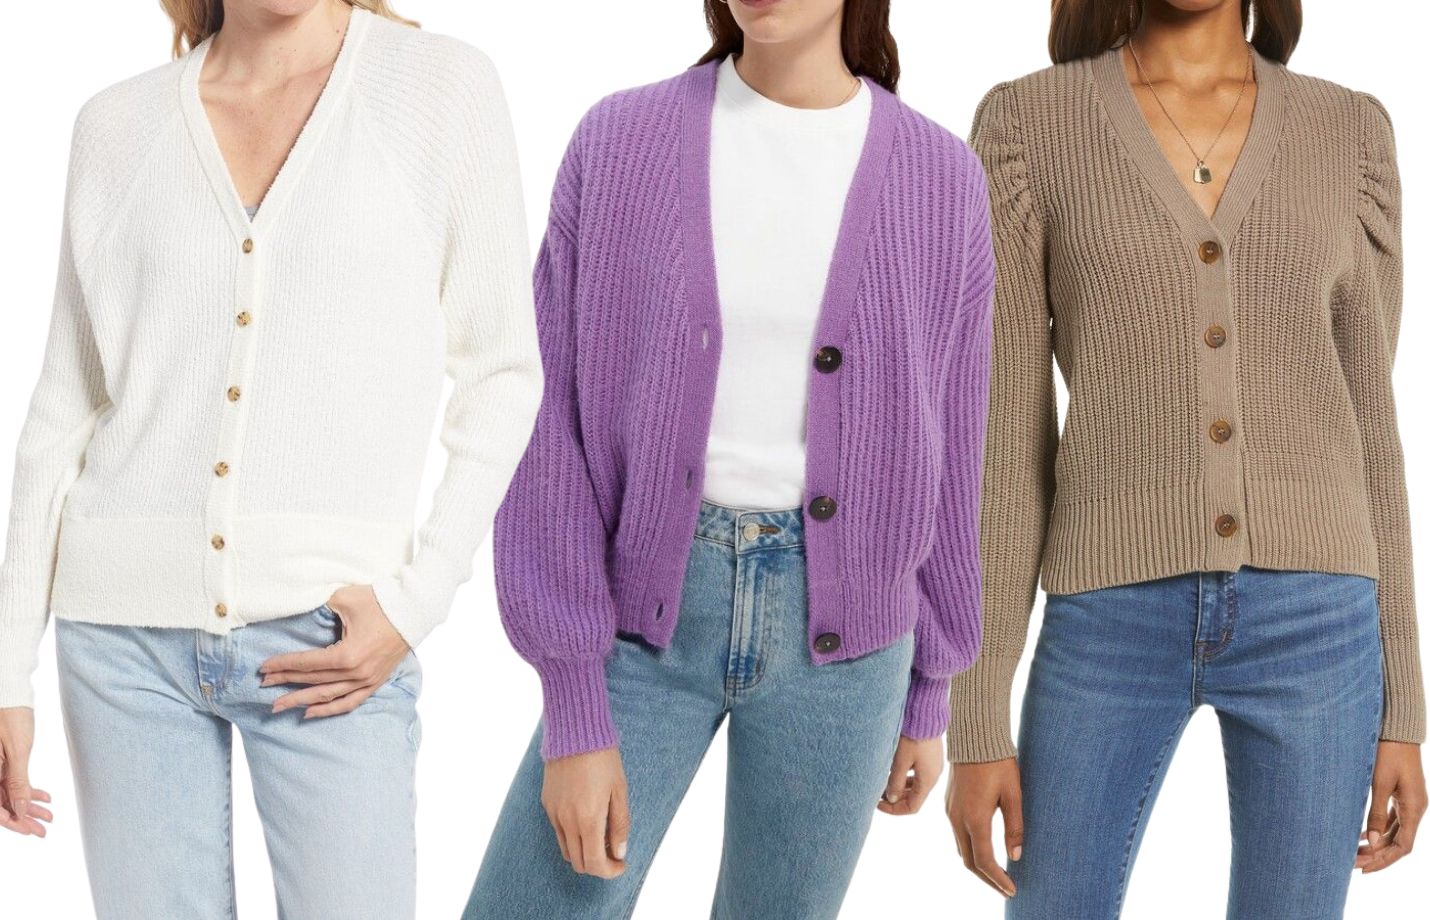 Trending This Fall: Cropped V-Neck Button Up Cardigans